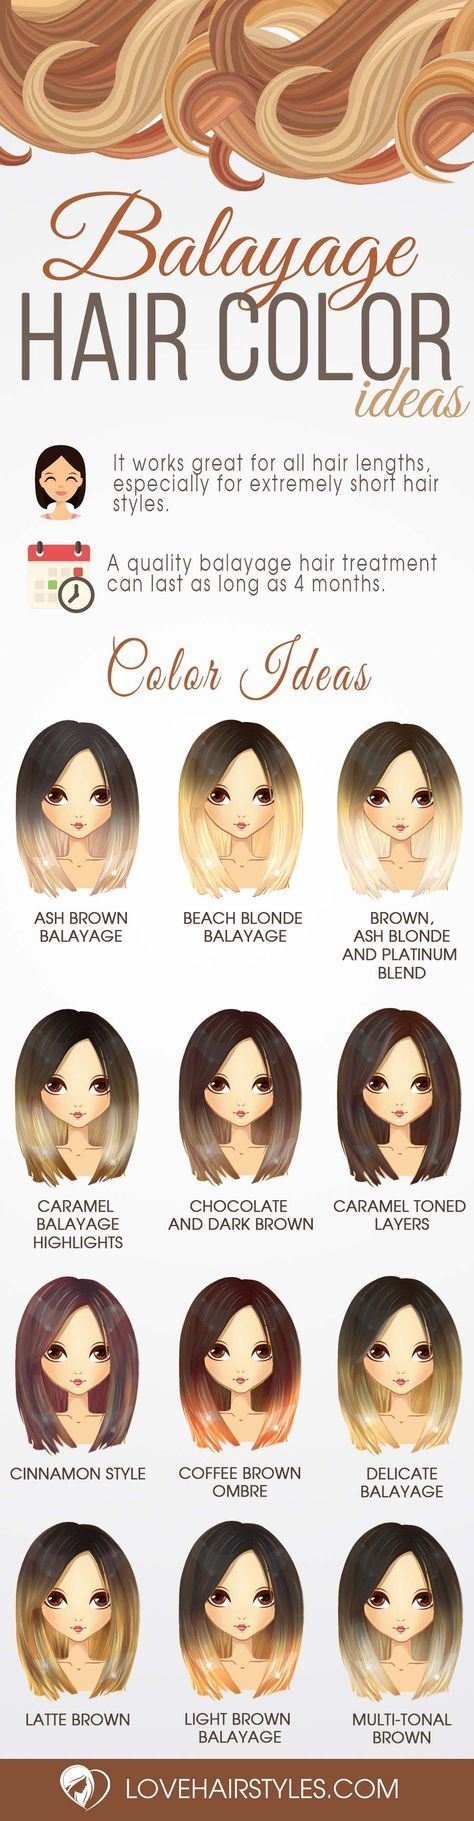 Highlights/ lowlights for Dark Brown Hair : Balayage Hair Color Ideas in Brown to Caramel Tones  See more: lovehairstyles